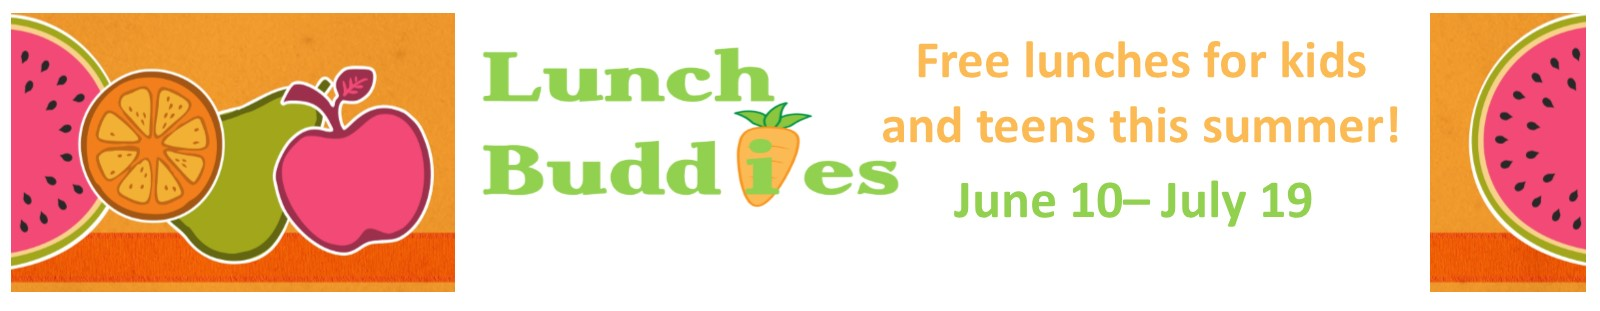 LUnch buddies -free lunches to kids and teens June 10- July 19